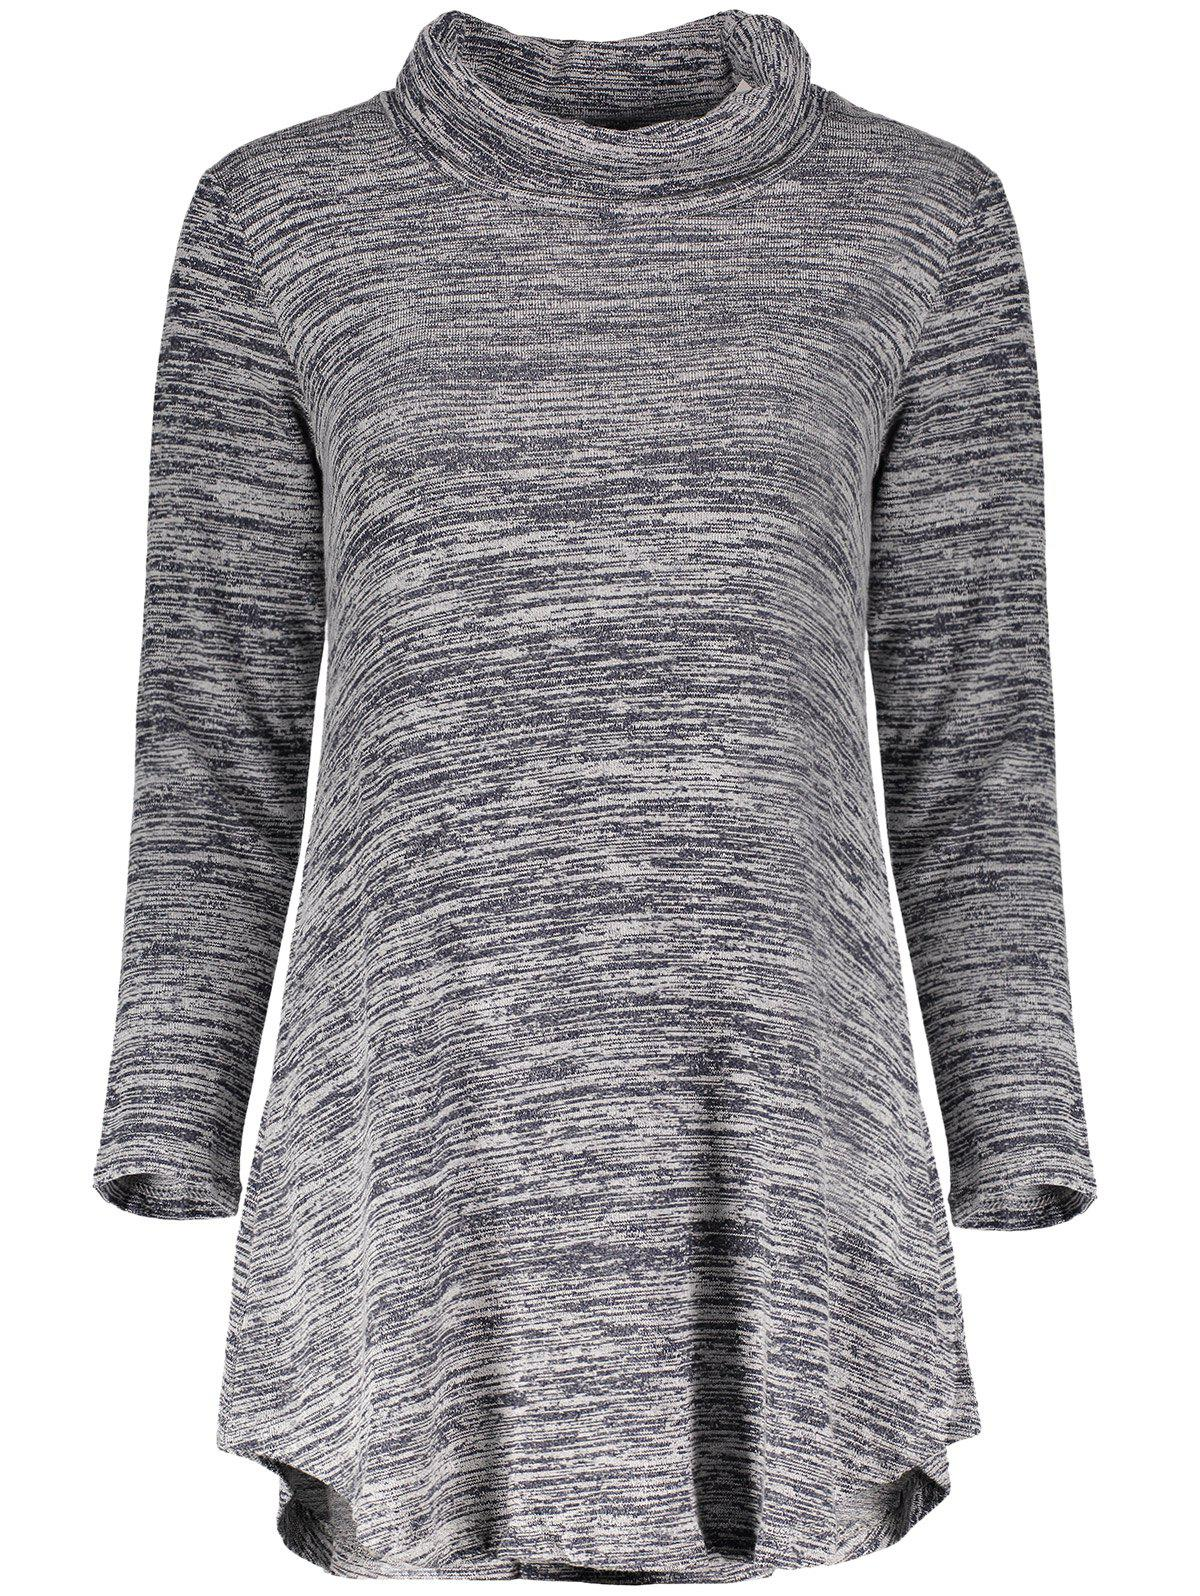 Unique Chic Cowl Neck Long Sleeve Asymmetrical Women's Knitted Dress